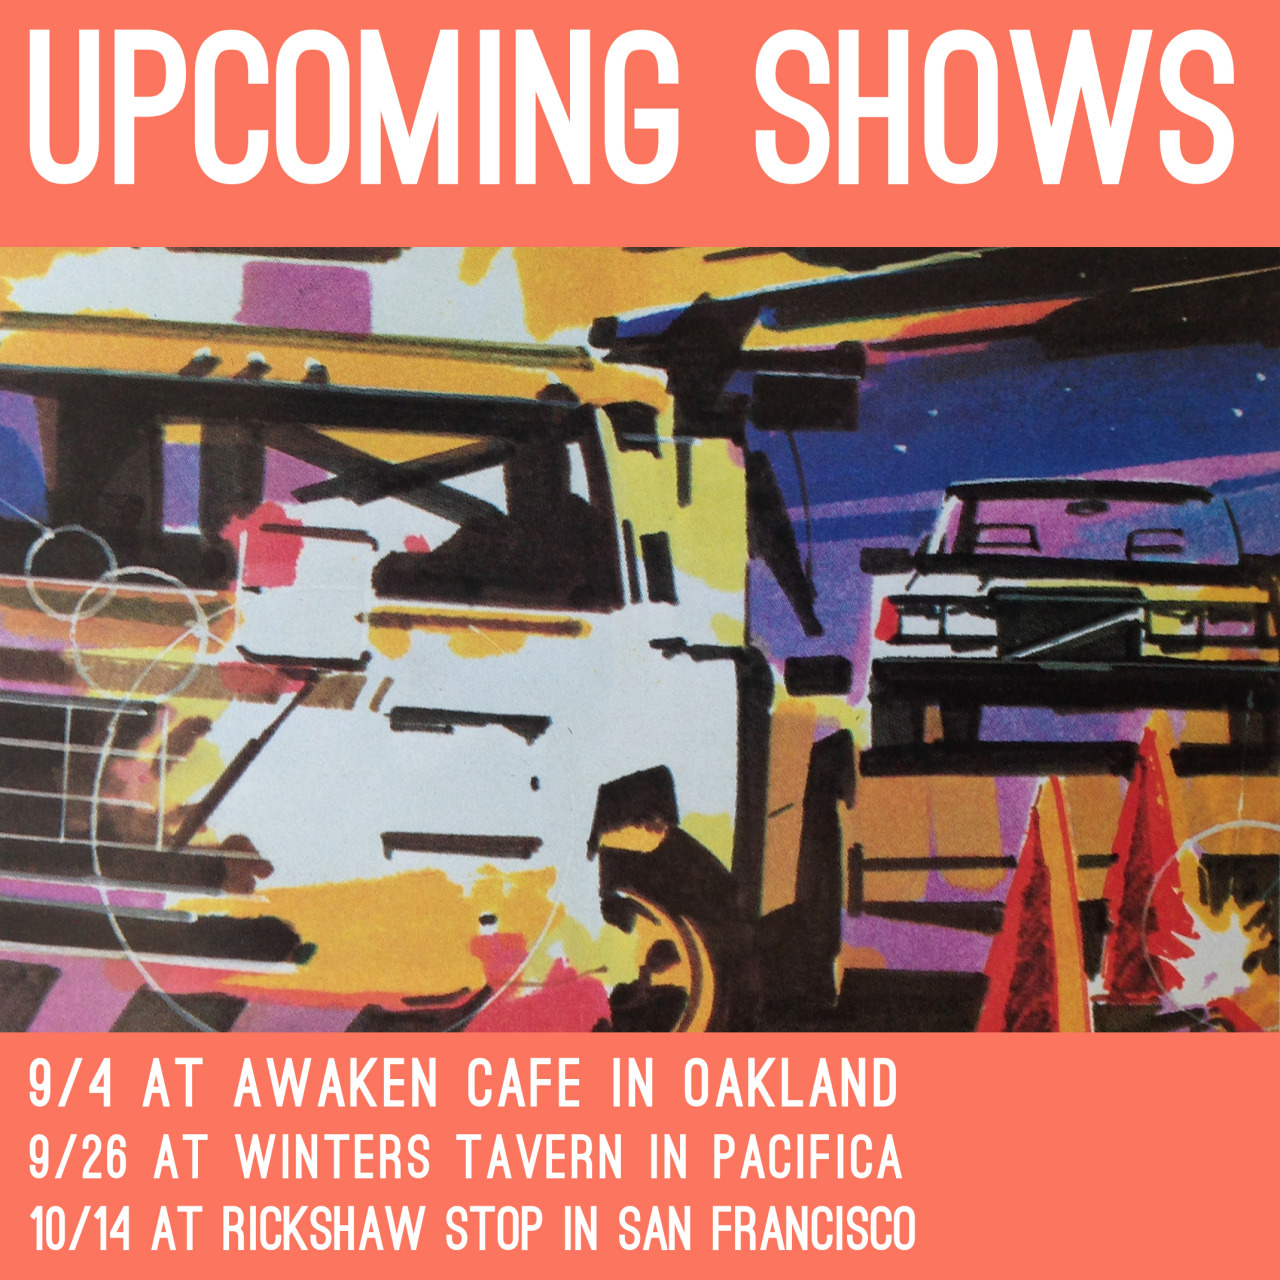 Upcoming shows  9/4  Awaken Cafe  in Oakland w/  Dad's LPs  and  Sweet Peaches . Show at 9:15pm. FREE. RSVP: http://on.fb.me/1U6uajE   9/26  Winters Tavern  in Pacifica for  Fogfest  2015. FREE  10/14  Rickshaw Stop  in San Francisco w/  Hibbity Dibbity  and  The Old Folks . Advance tickets: http://ticketf.ly/1Jya2jF